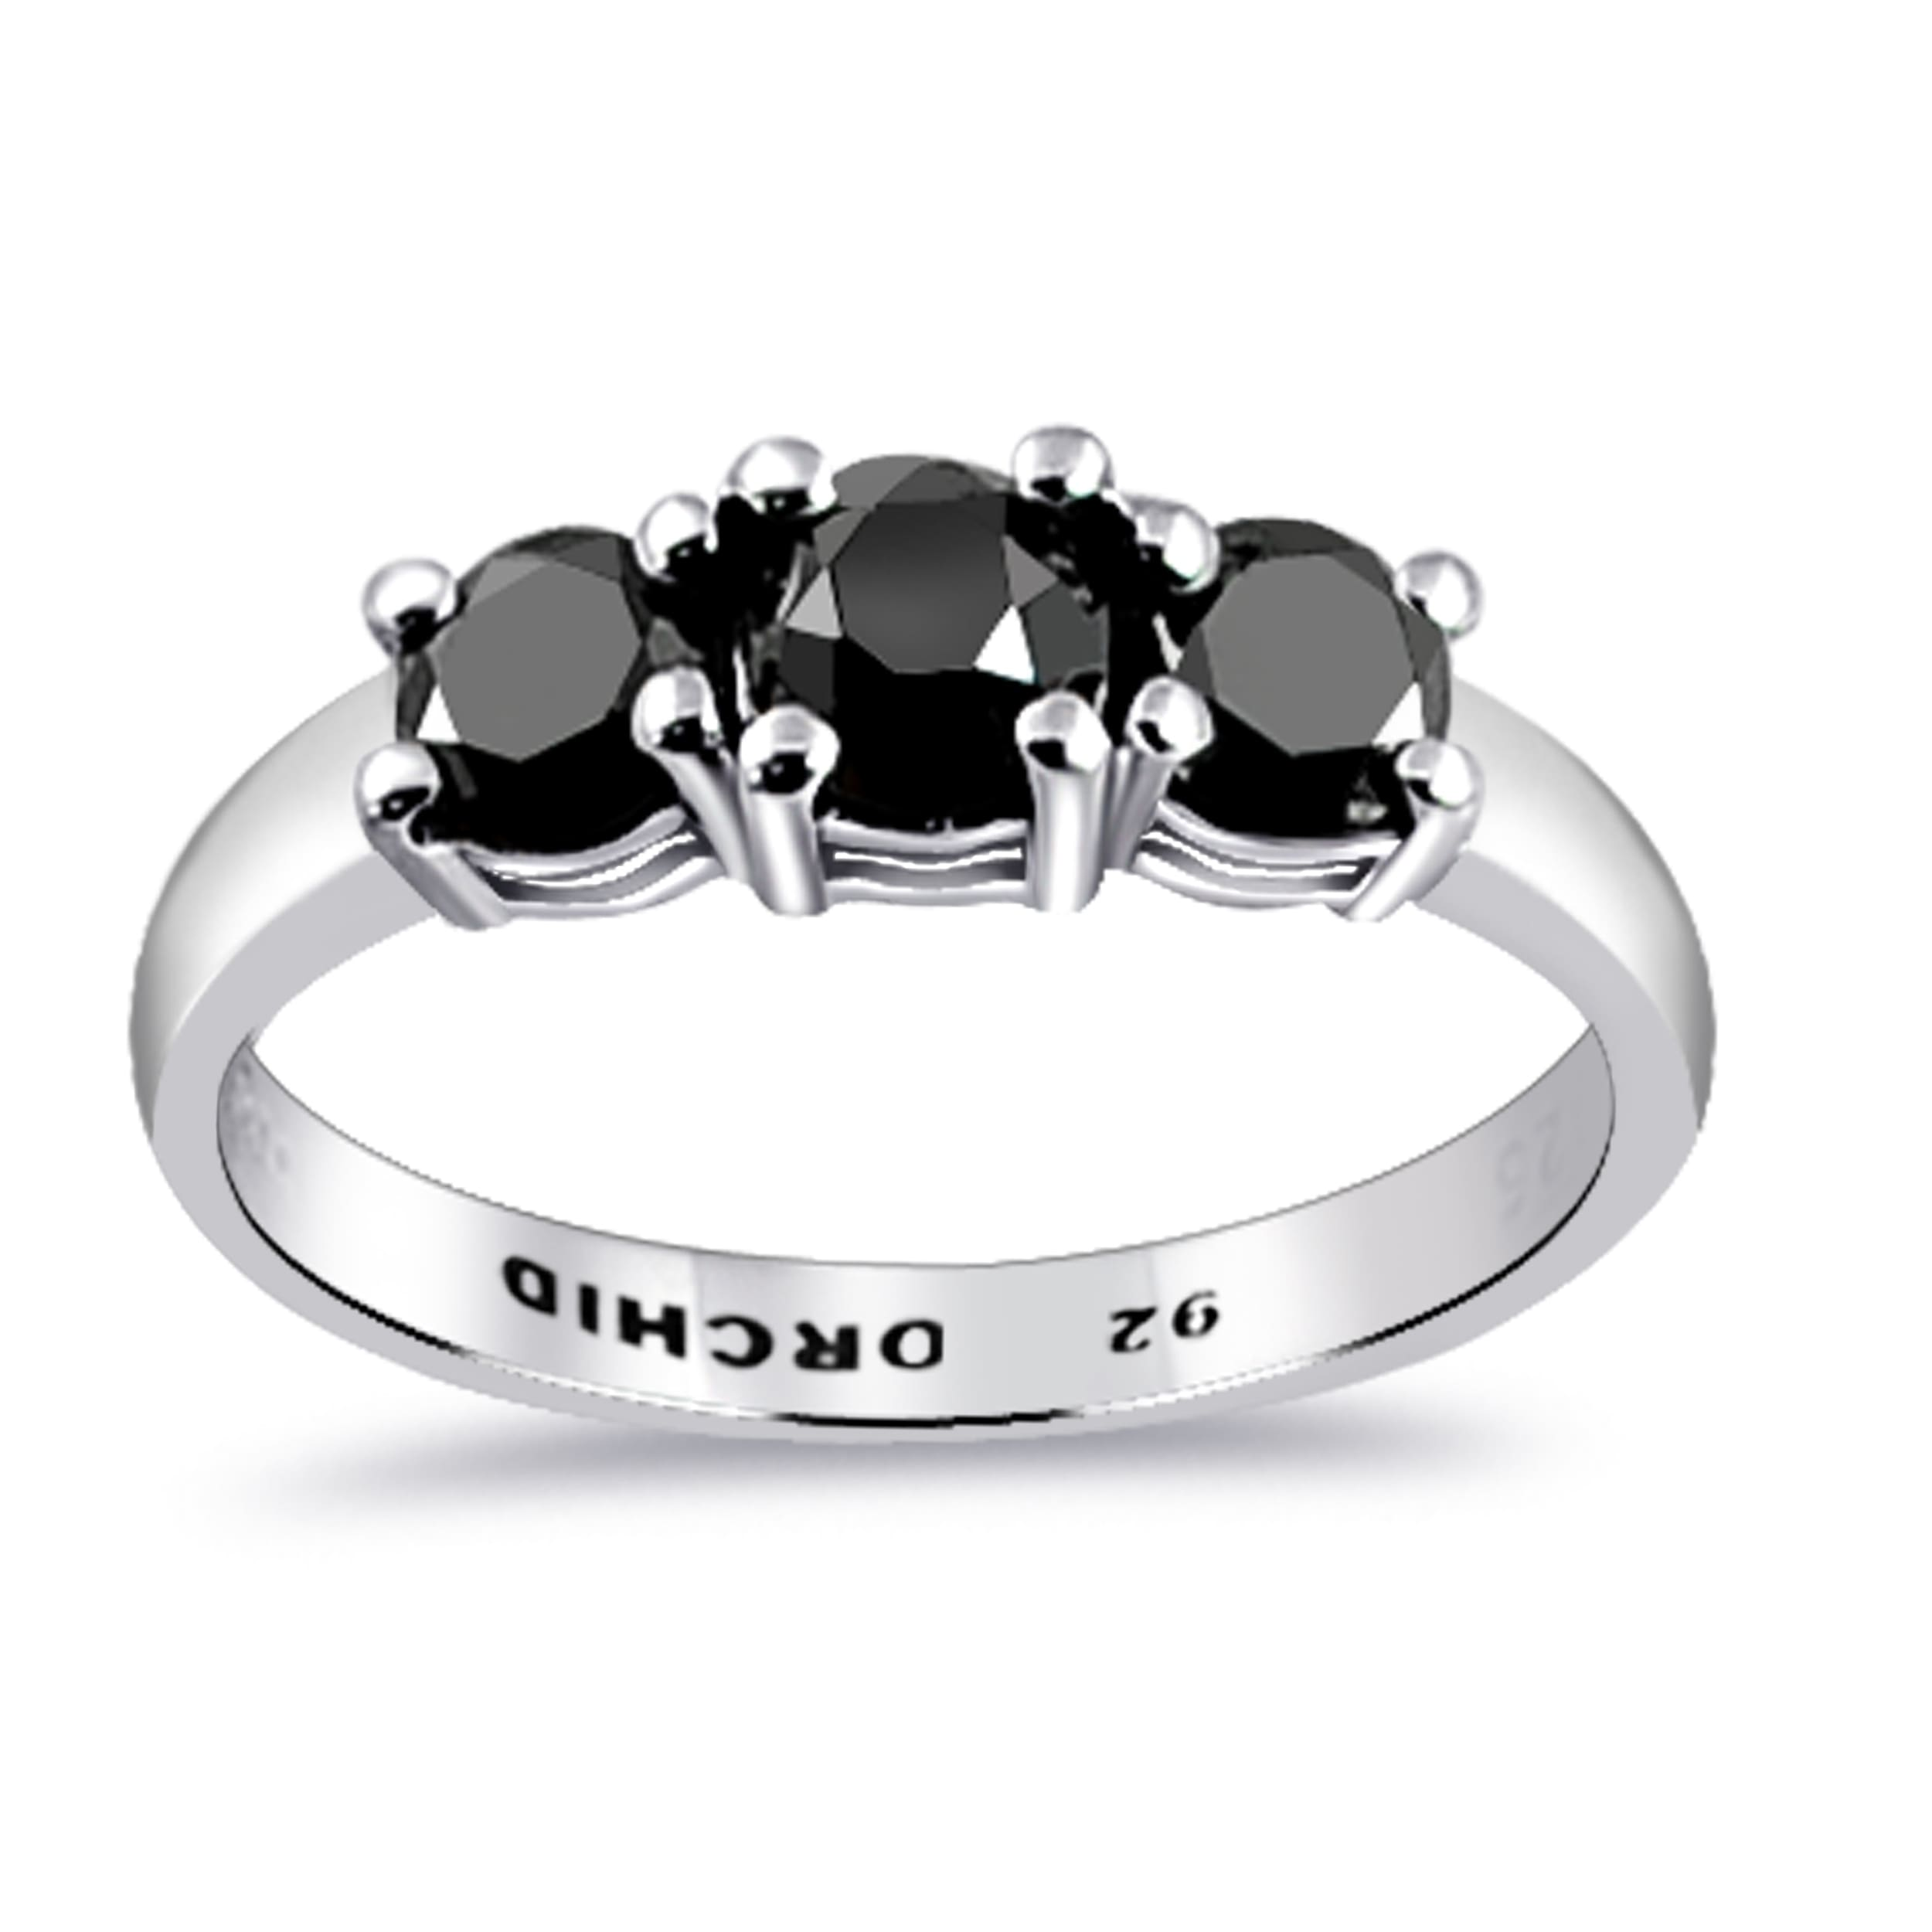 .925 Sterling Silver Vertical Infinity Knot Fashion Ring with Clear CZ Size 4-10